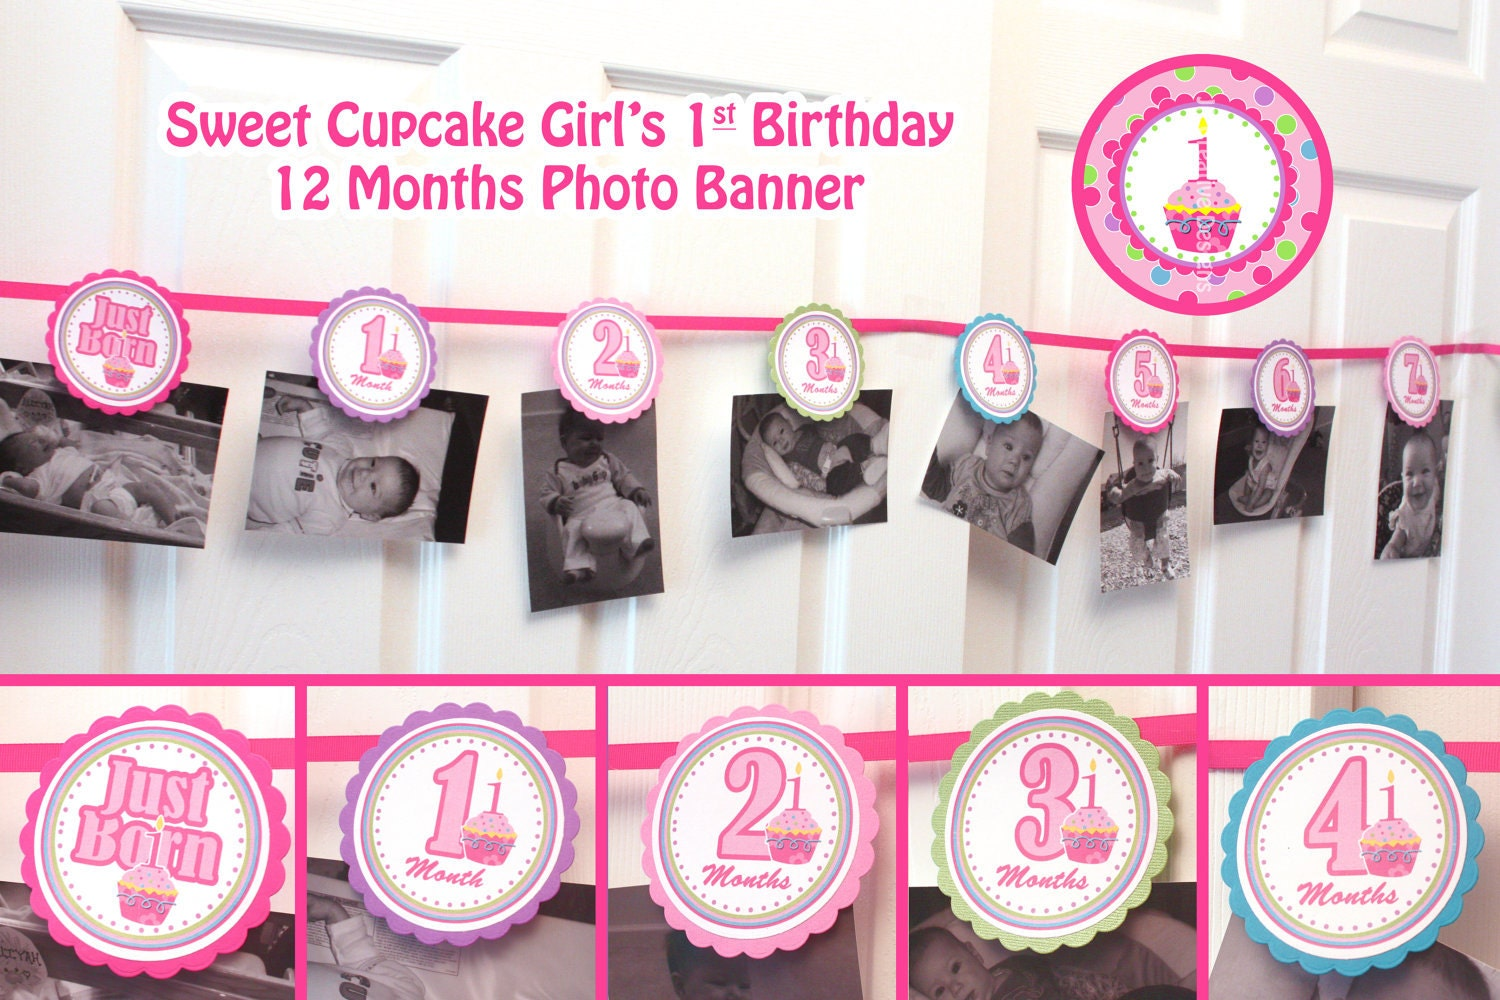 photo banner picture banner 1st birthday banner girl 12 month